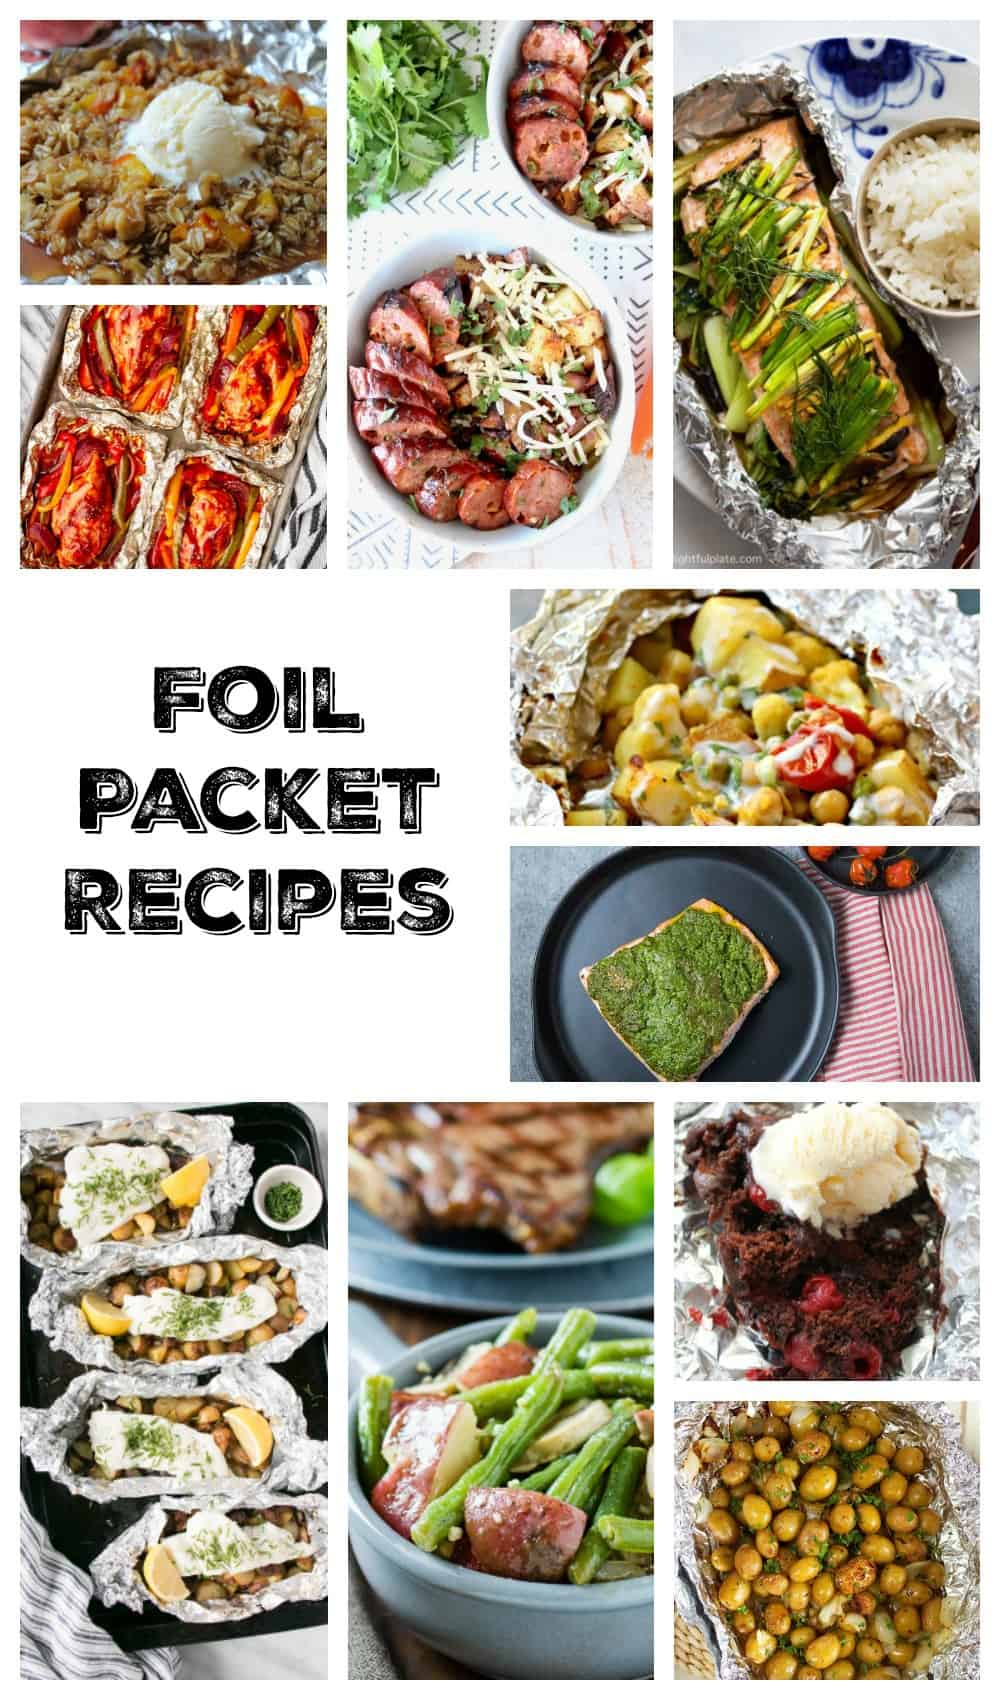 Collage of several foil packet recipes, including desserts, salmon, chicken, cod, and potatoes